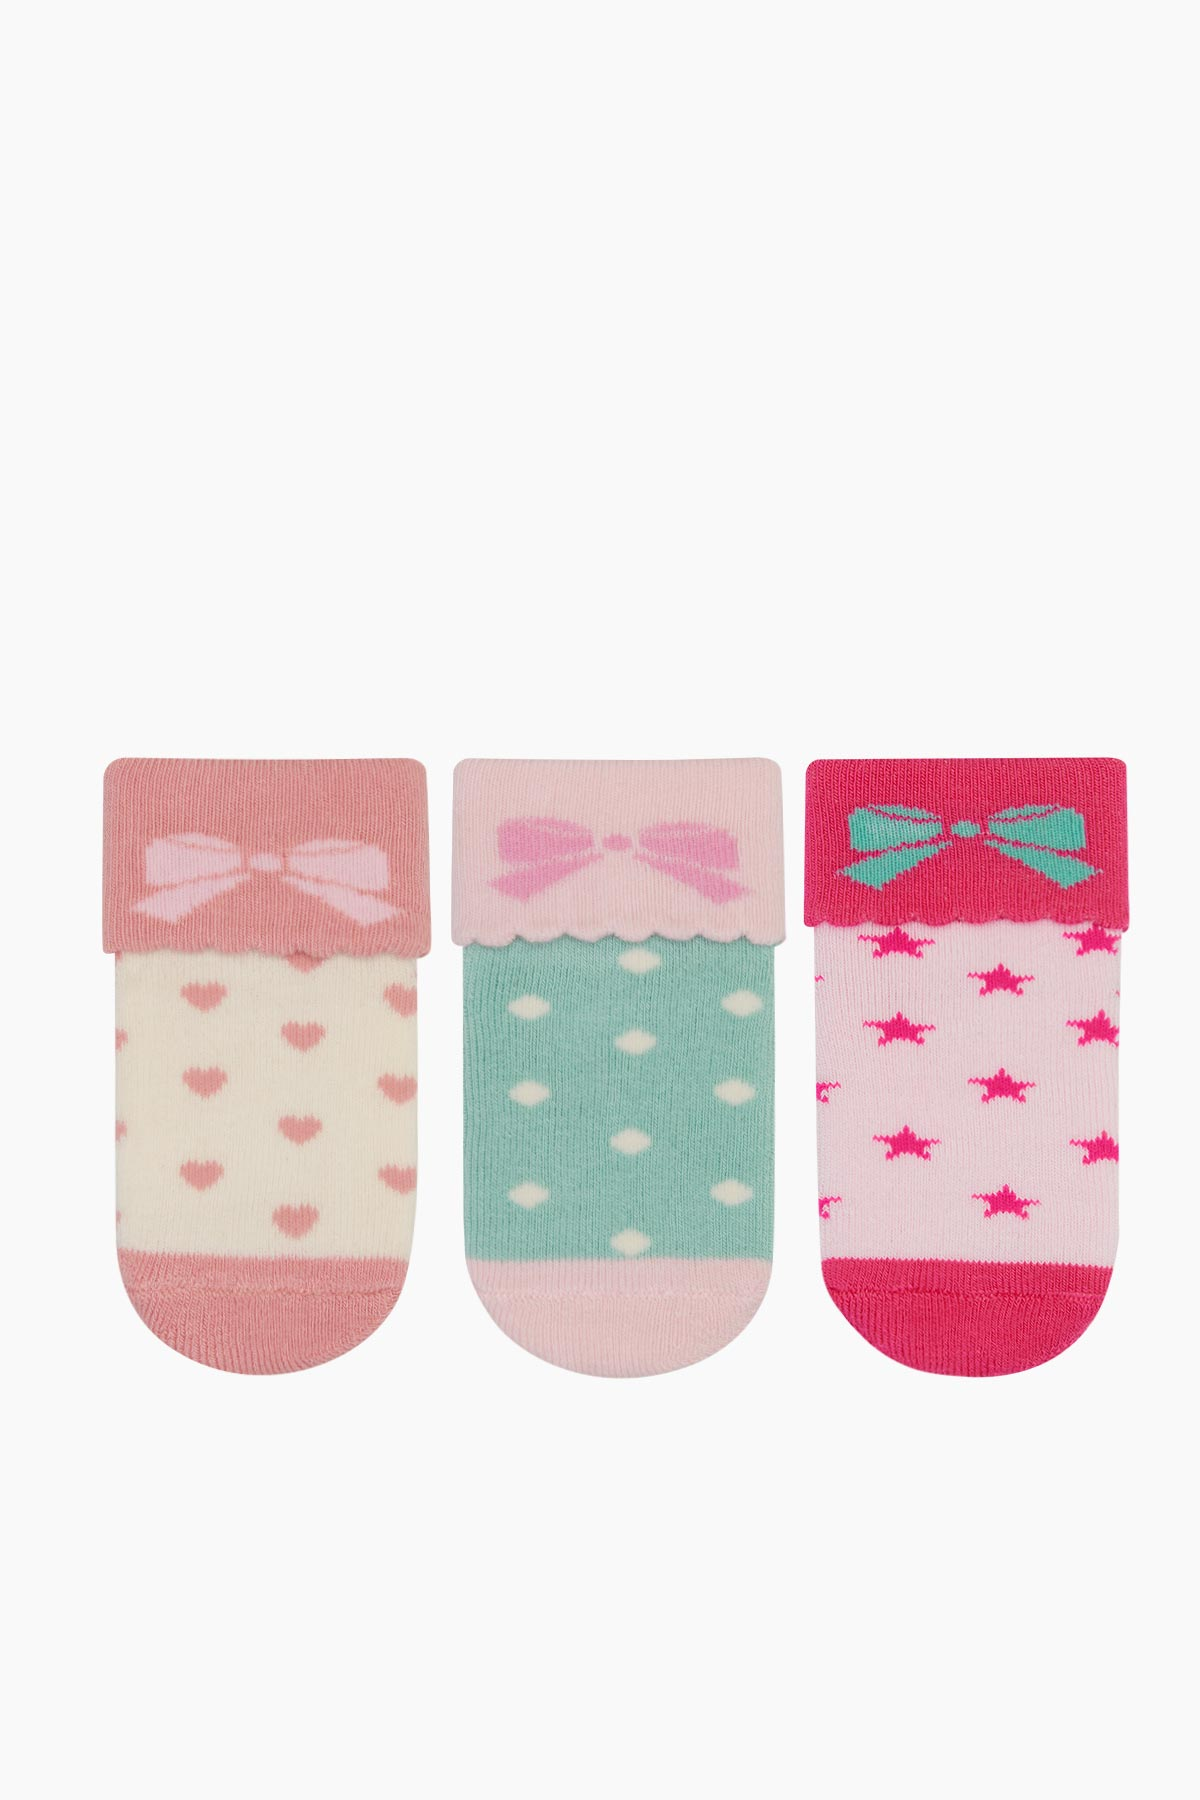 Bross - Bross 3-Pack Ribbon Pattern Towel Baby Socks